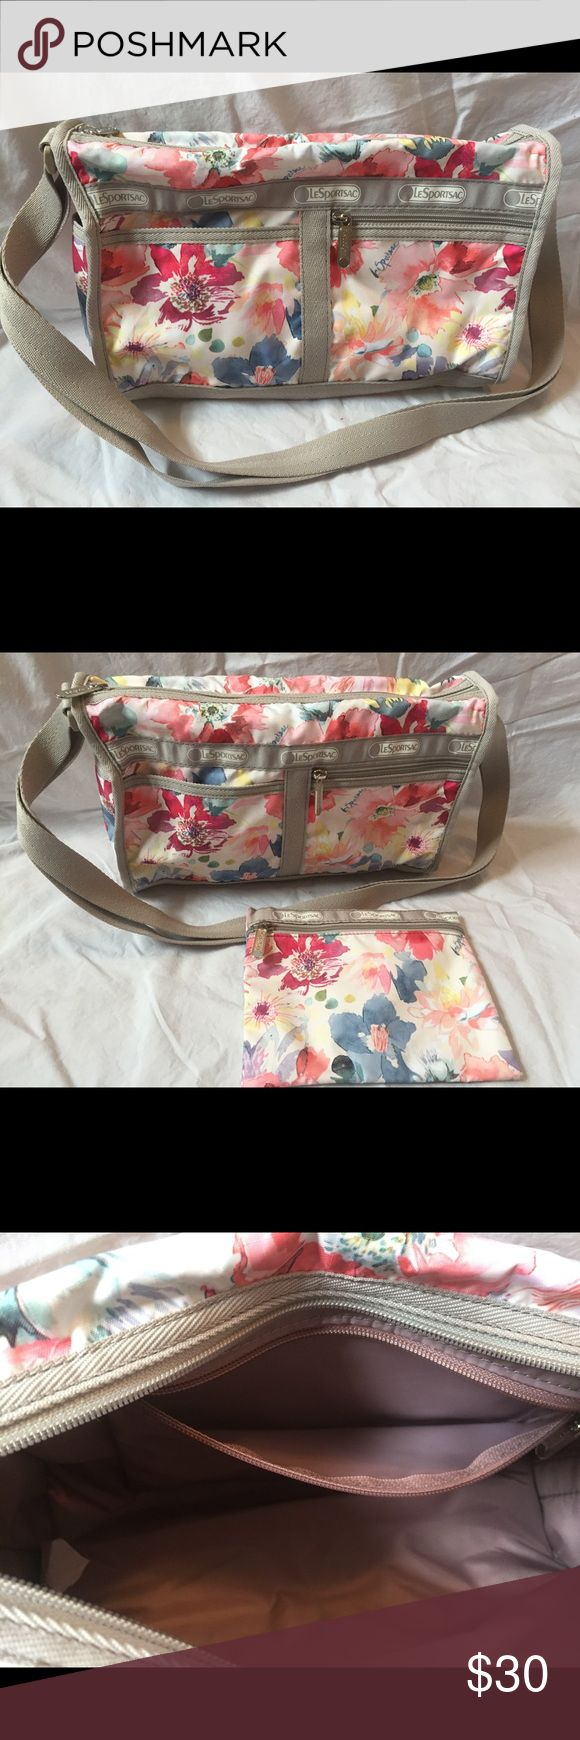 LeSportSac multi color Floral bad with pouch LeSportSac multi color Floral bag with pouch.  NWOT.  Really lightweight.  100 percent polyester  Hand wash cold water.    11 inches wide 7 inches tall 4.5 inches deep.   Can be worn cross body Lesportsac Bags Shoulder Bags